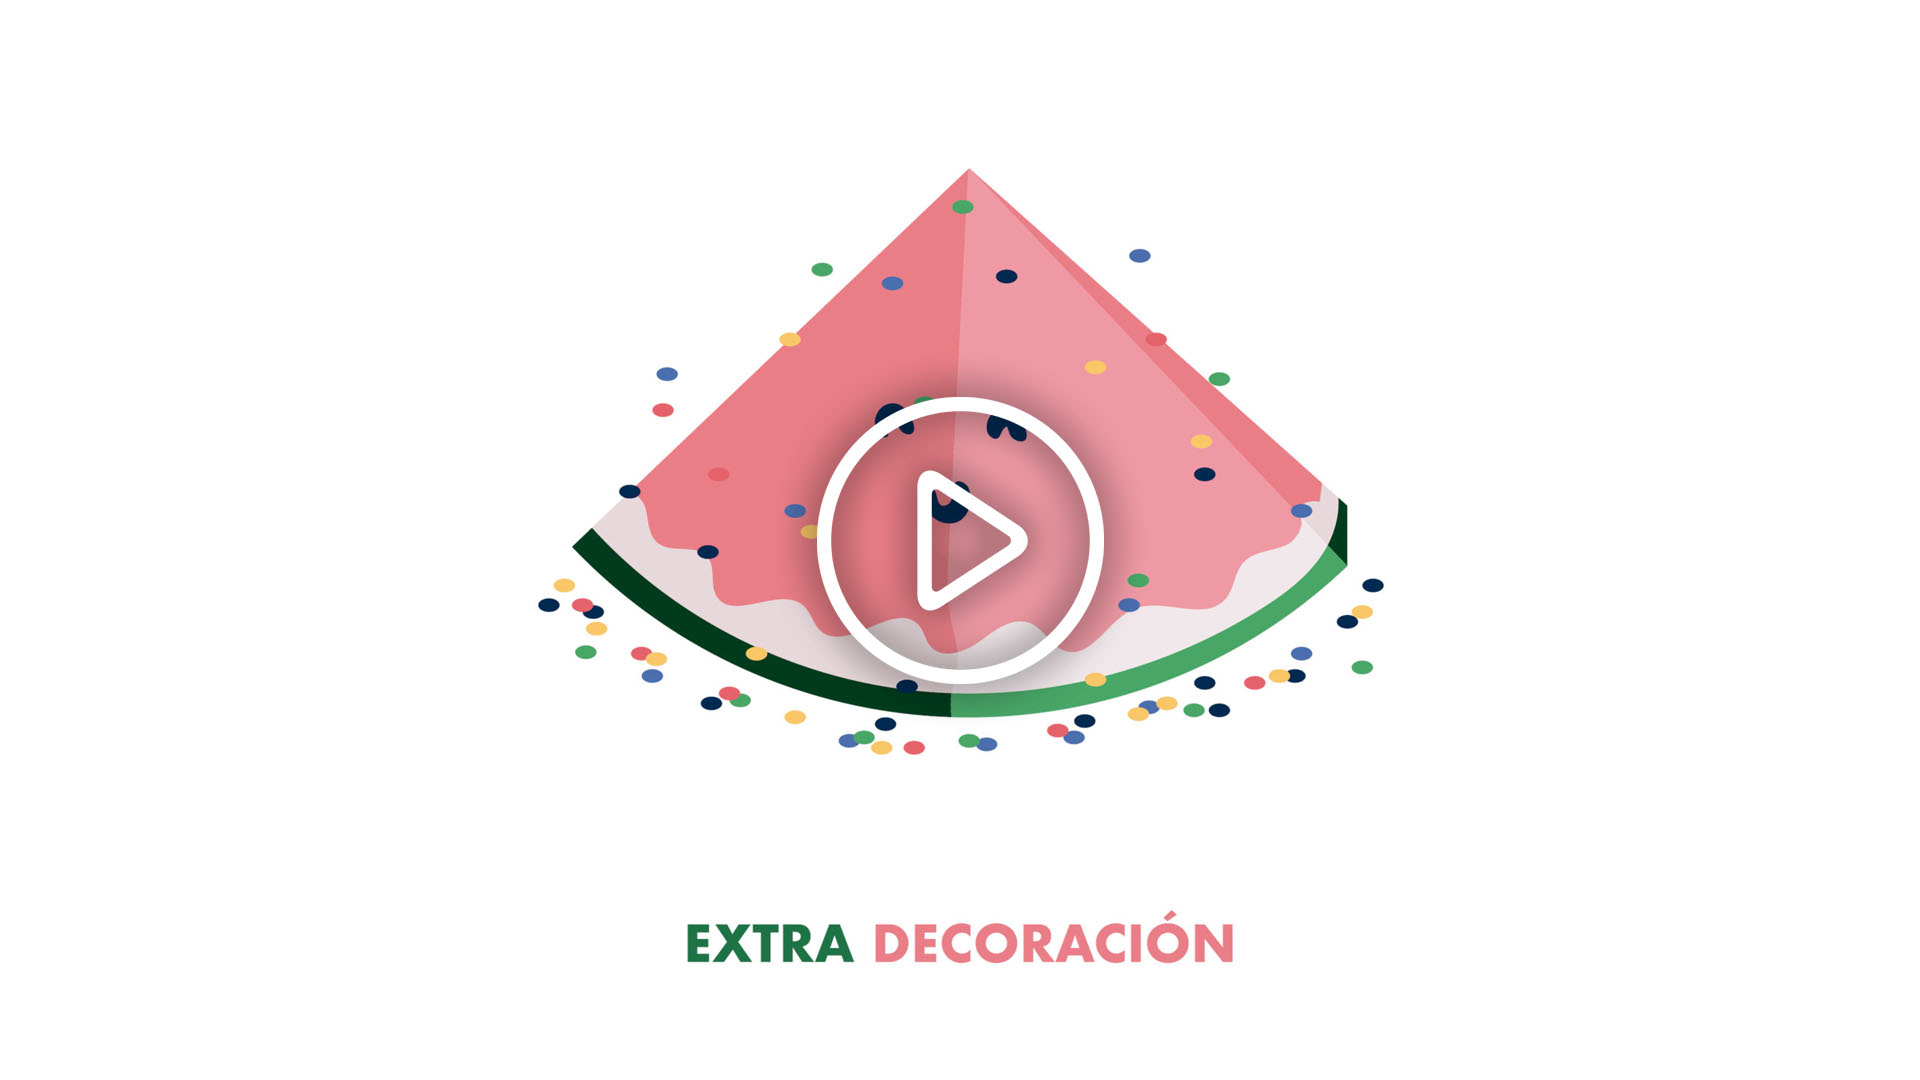 video explicativo servicio decoración extra de interior 03